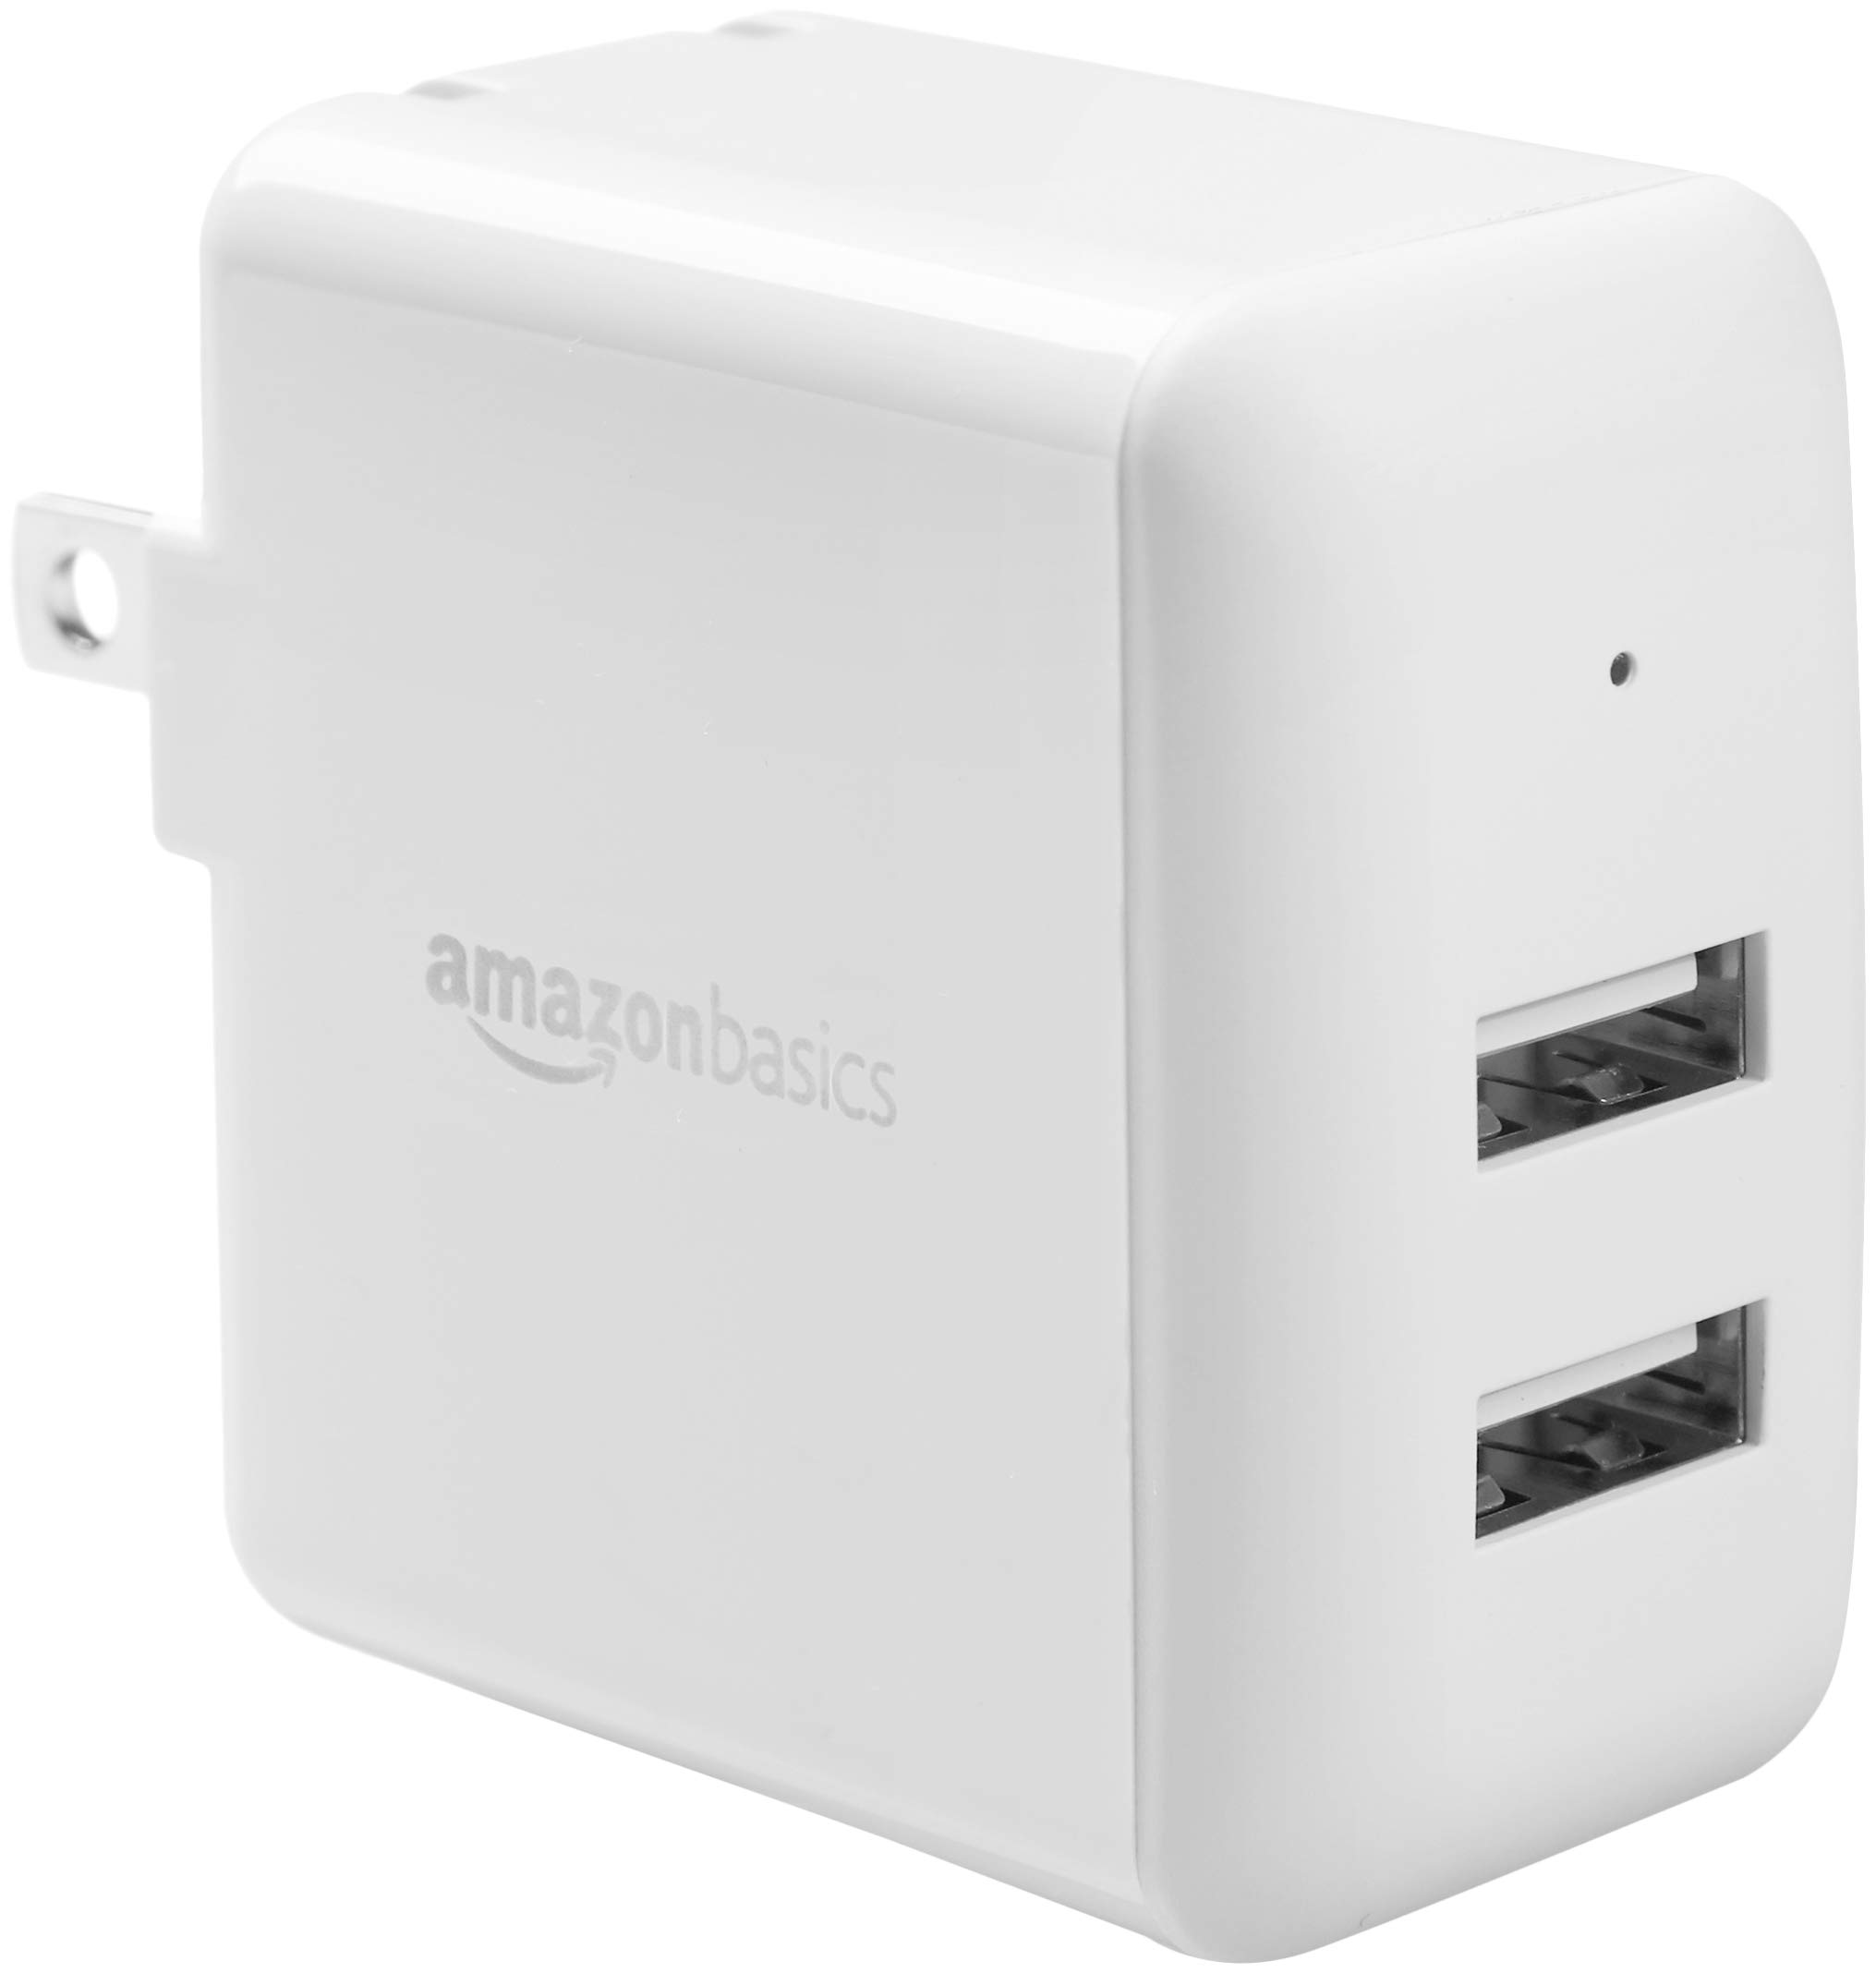 AmazonBasics Dual-Port USB Wall Charger for Phone, iPad, and Tablet, 2.4 Amp, White by AmazonBasics